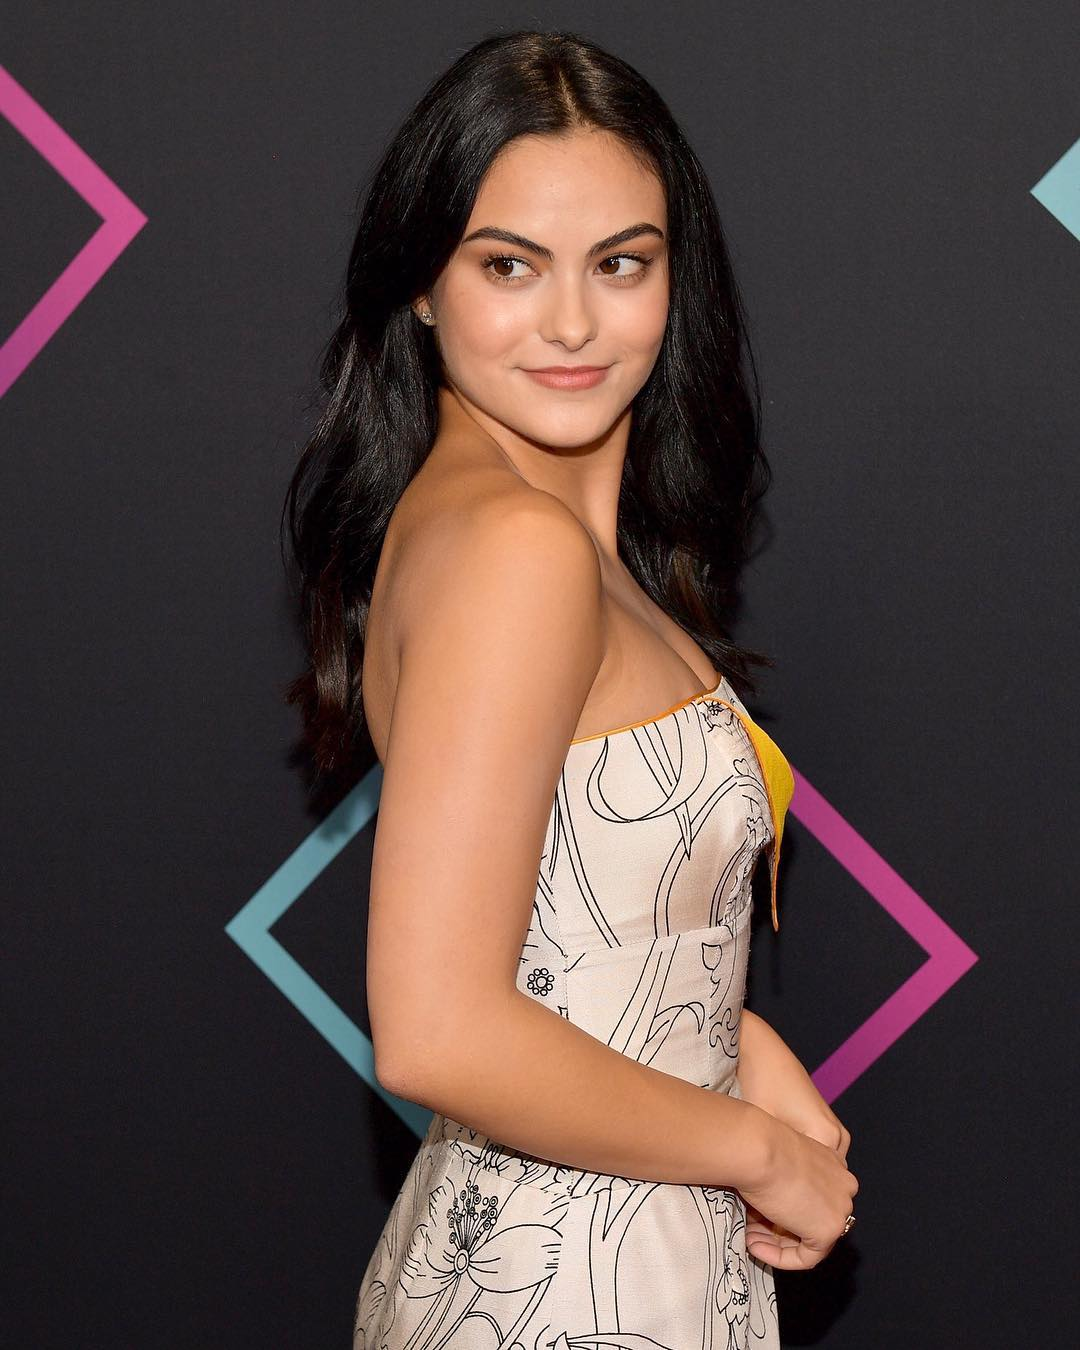 Камила Мендес: people's choice awards    thanks for voting and making riverdale the best drama show of 2018! we love youuUuUu